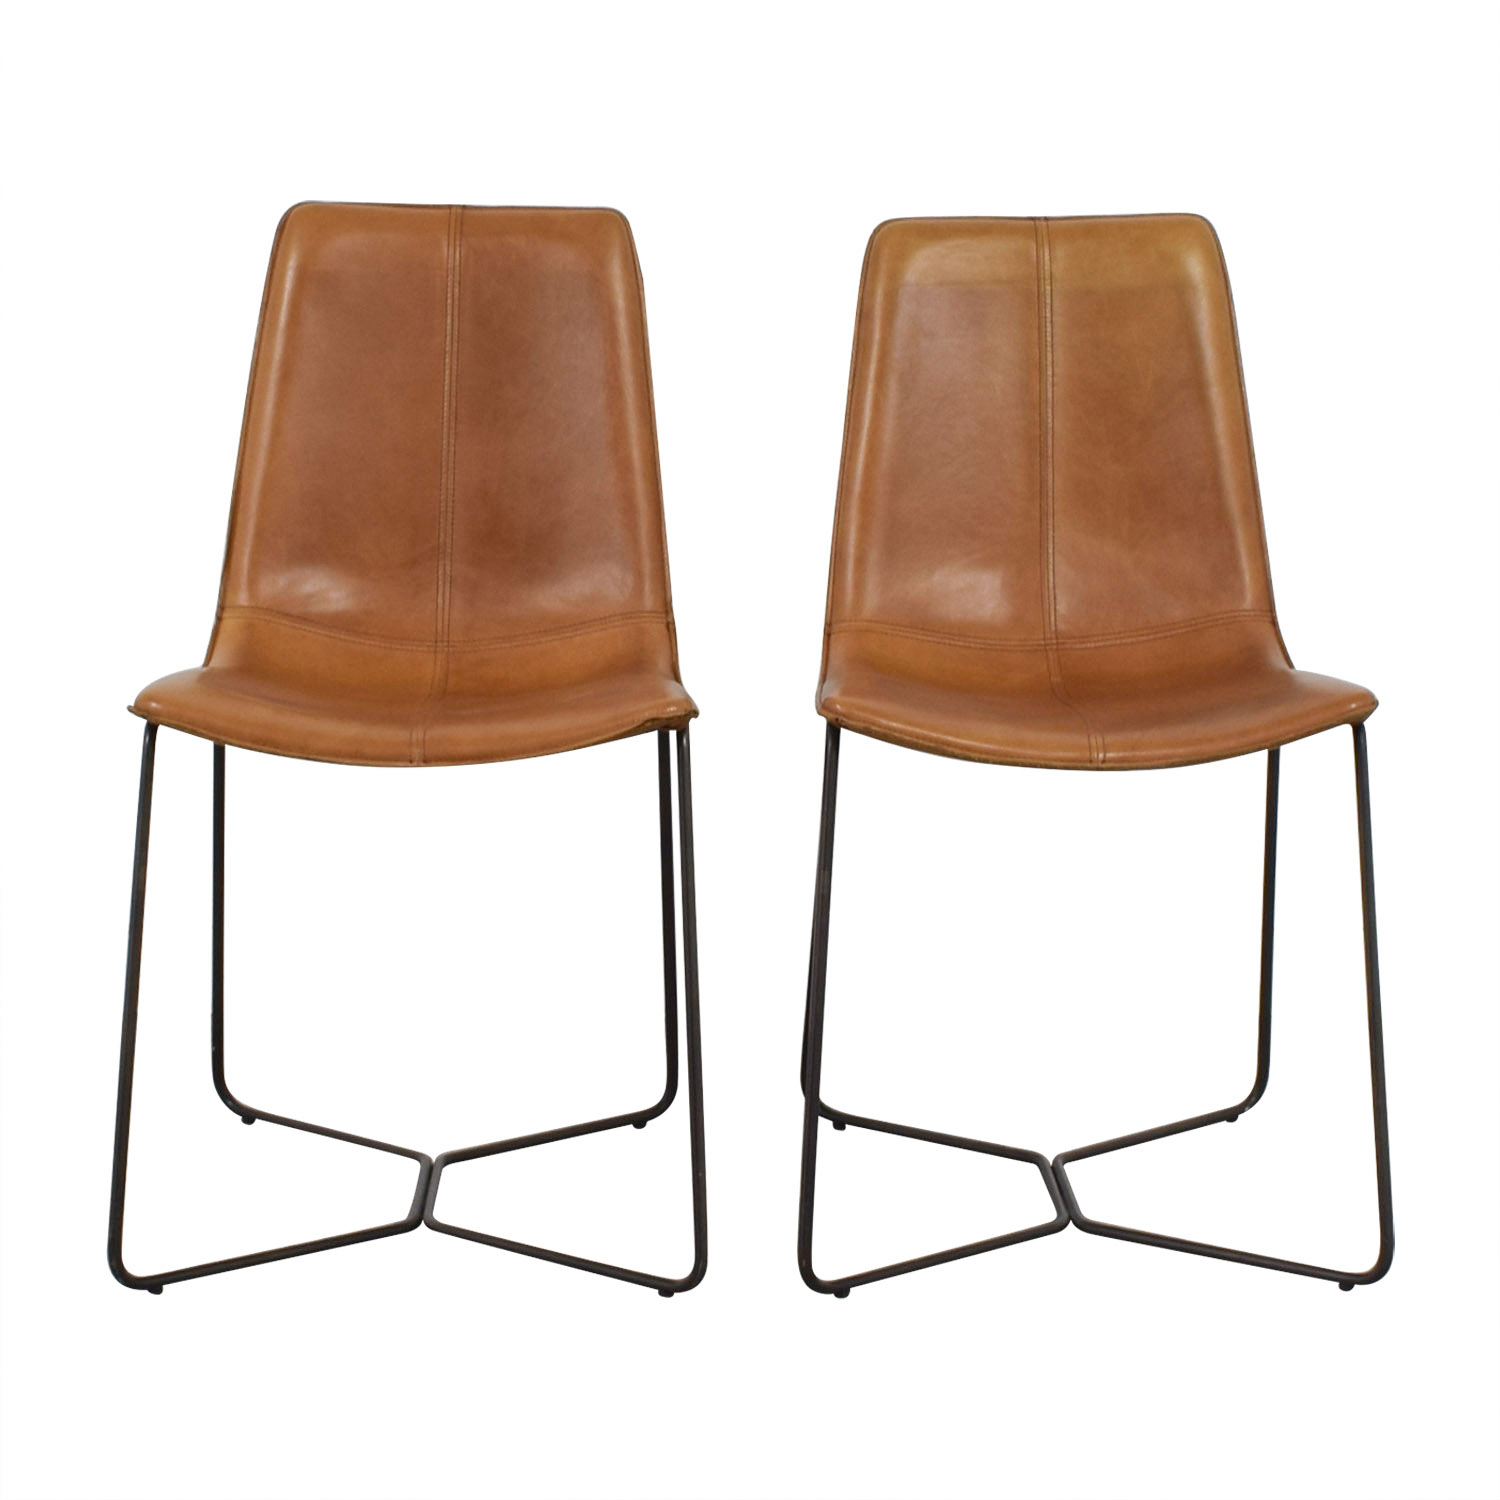 West Elm West Elm Leather Slope Dining Chairs